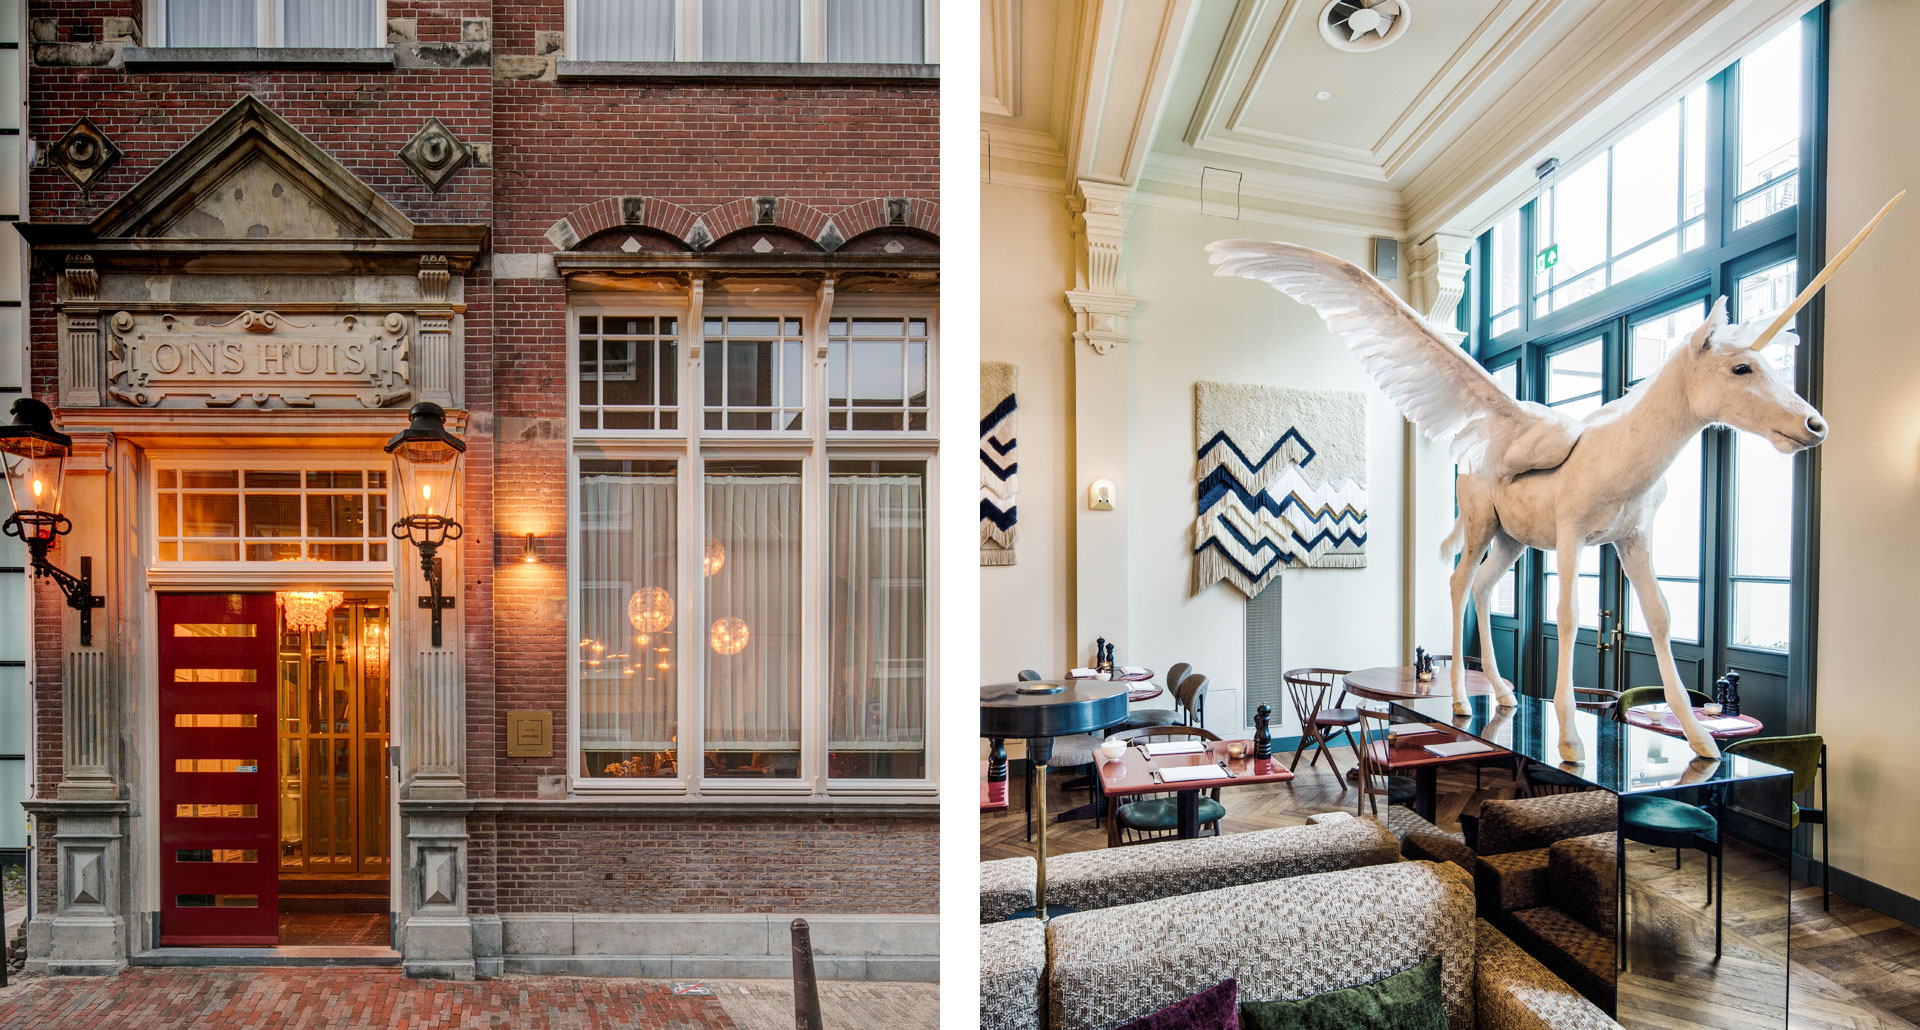 Hotel Mercier - boutique hotel in Amsterdam